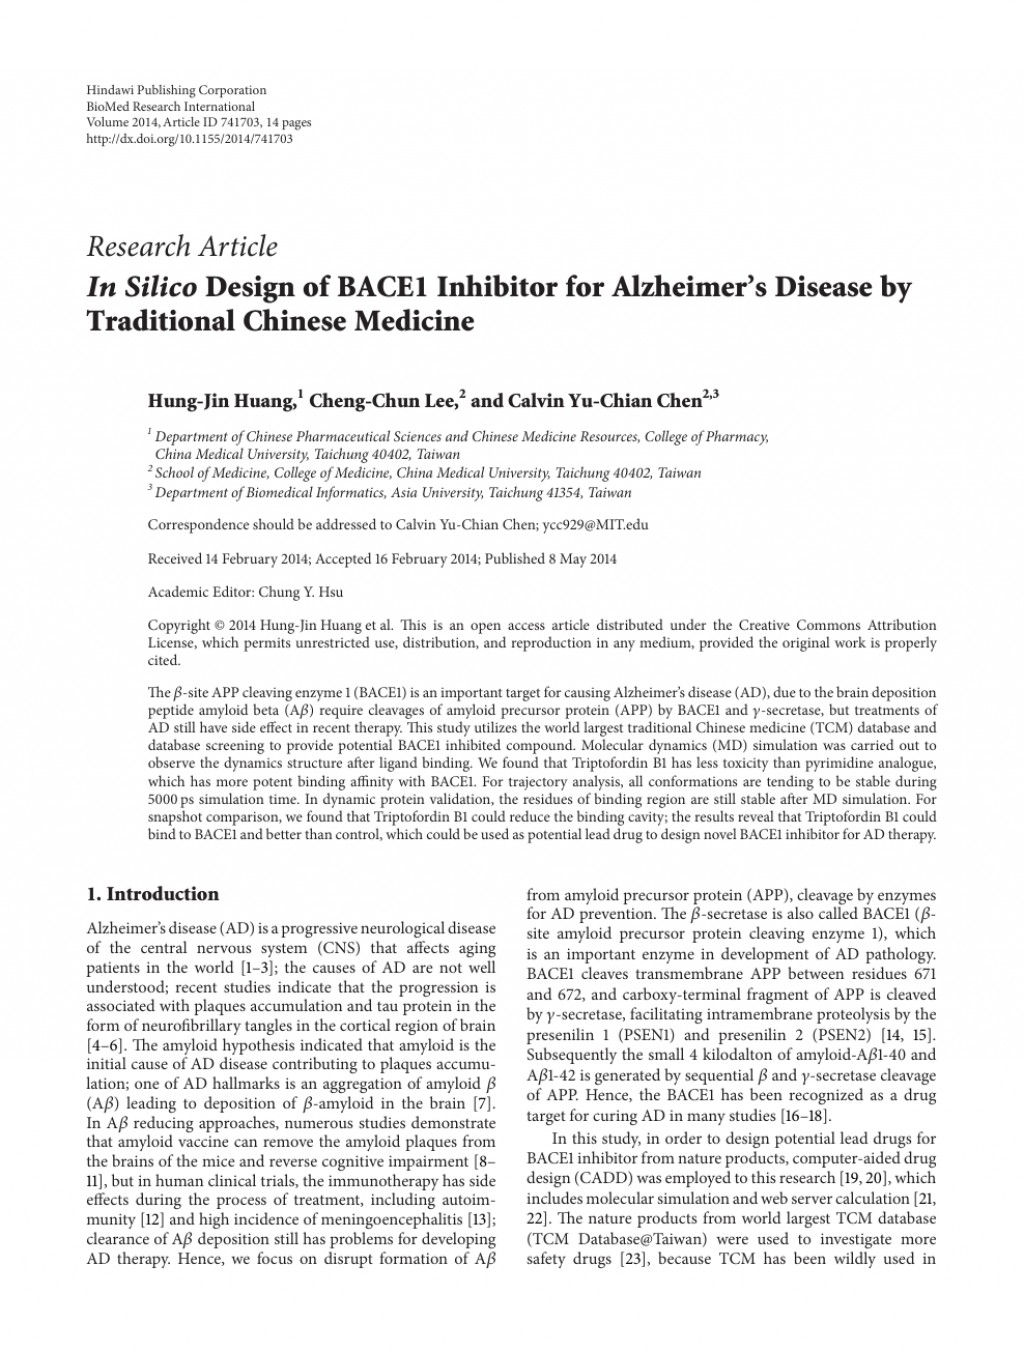 004 Alzheimers Disease Research Paper Topic Archaicawful Alzheimer's Ideas Topics Large